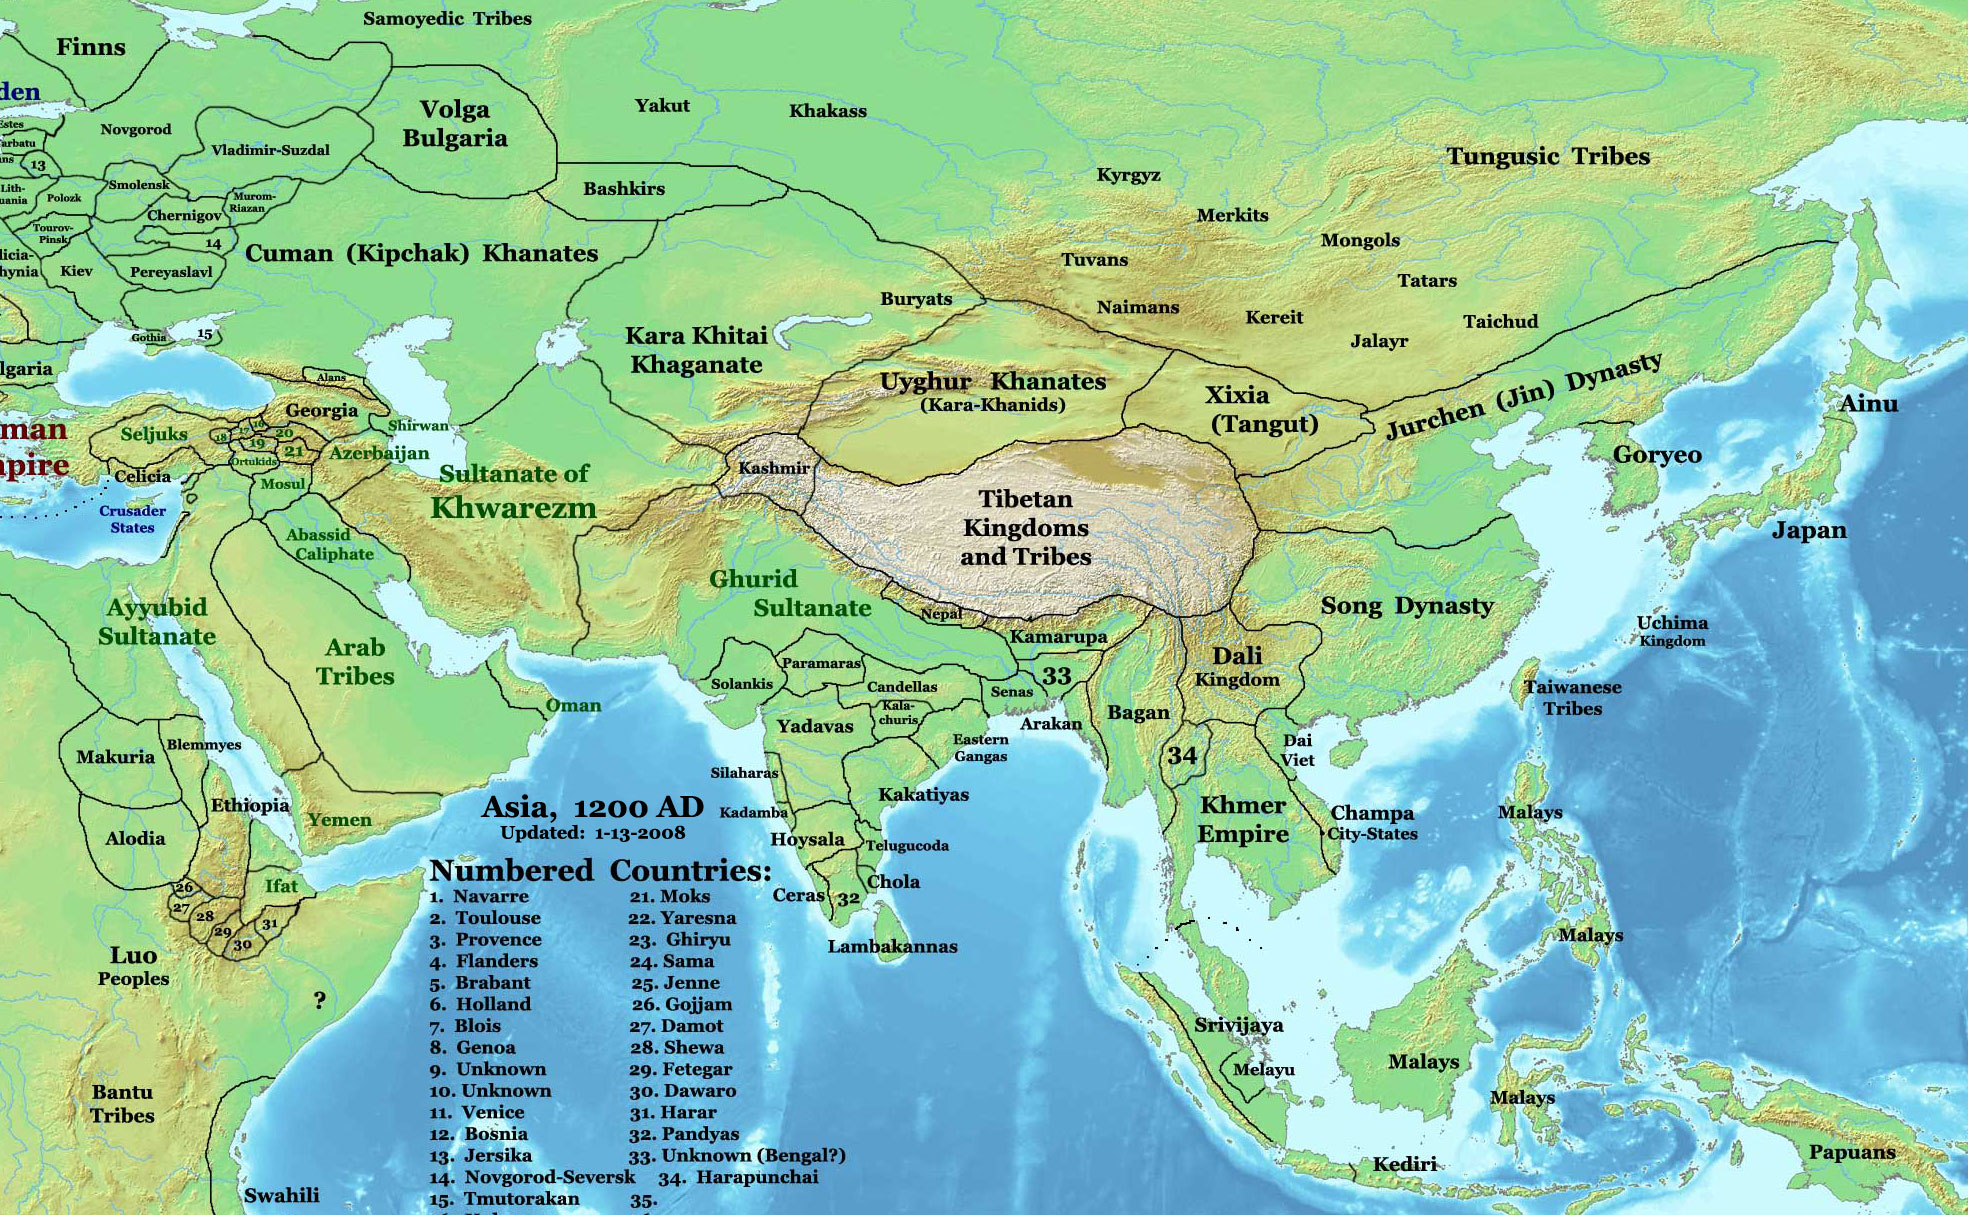 https://i0.wp.com/upload.wikimedia.org/wikipedia/commons/1/16/Asia_1200ad.jpg